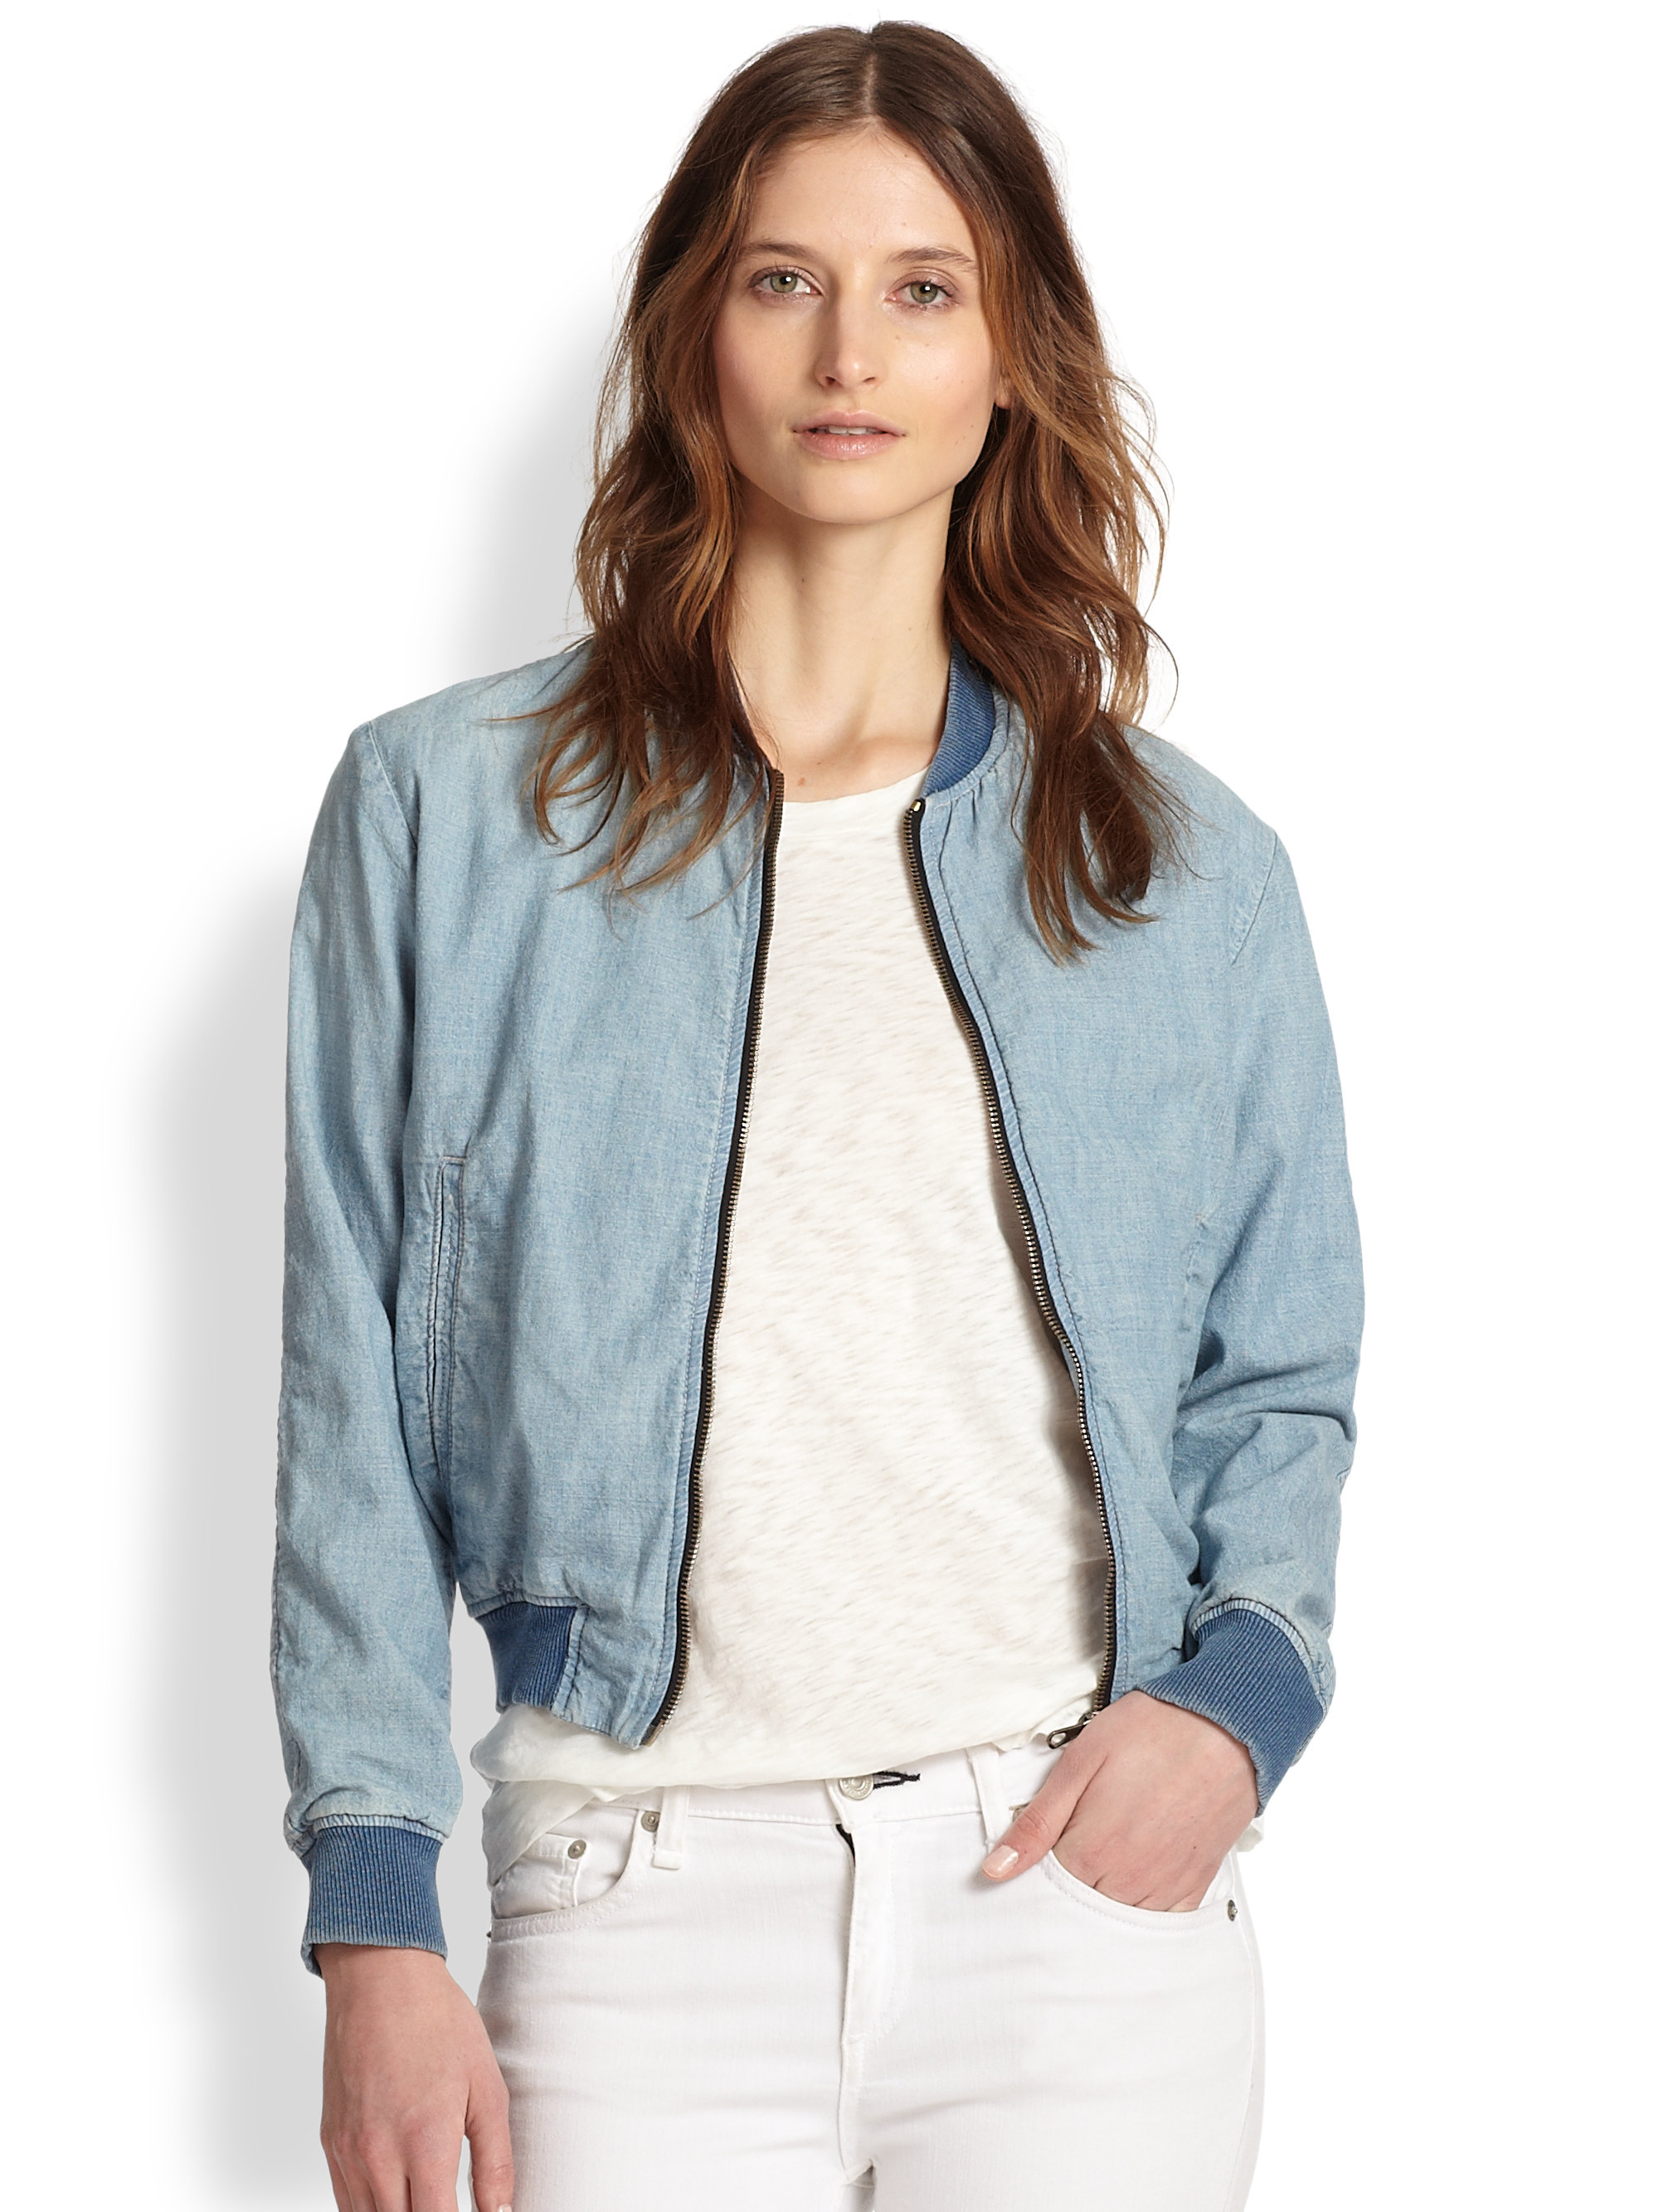 Rag & bone Denim Bomber Jacket in Blue | Lyst